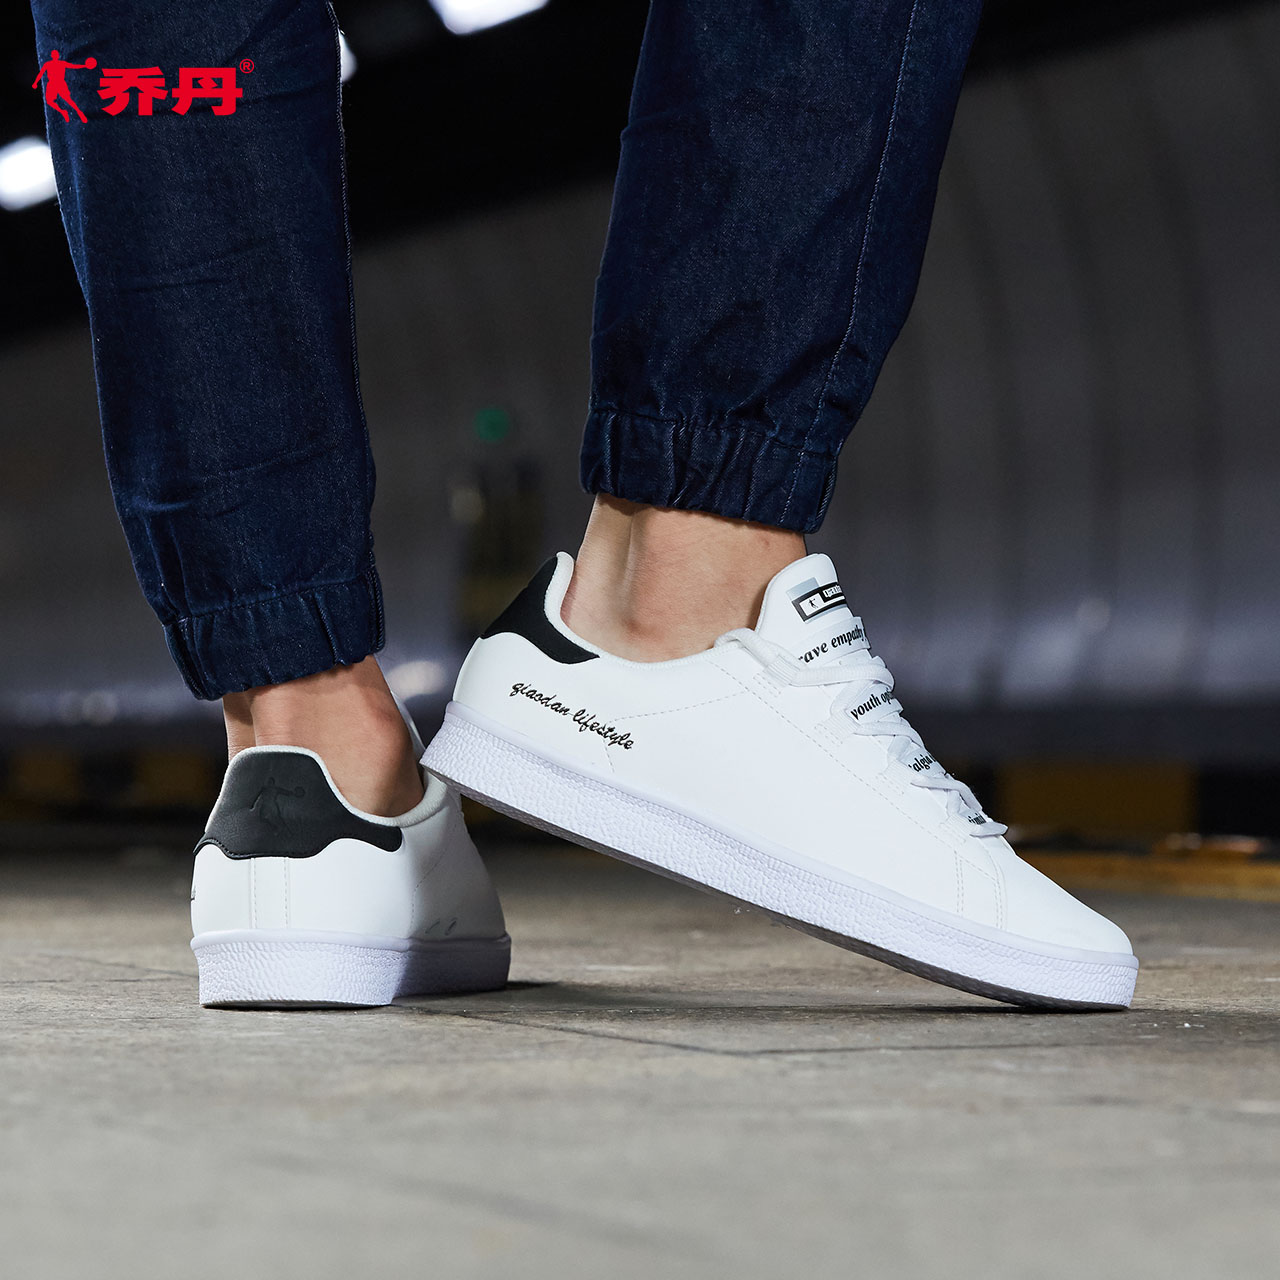 1311d7cae7c820 Jordan shoes male 2019 new Korean students sports shoes casual shoes  lightweight wear-resistant small white shoes solid color men s shoes